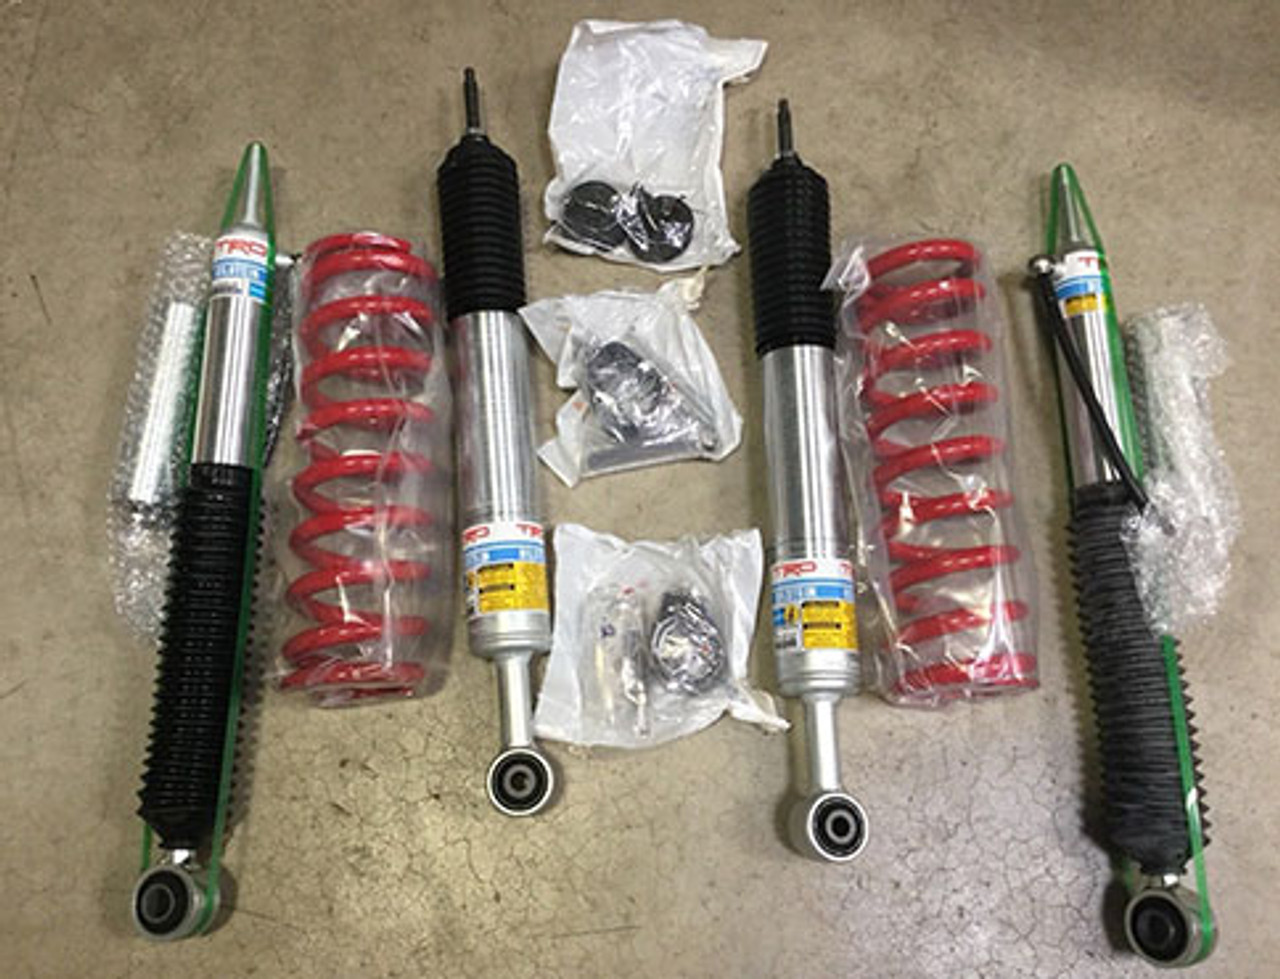 FJ Cruiser TRD / Bilstein Suspension Kit (PTR13-35140)